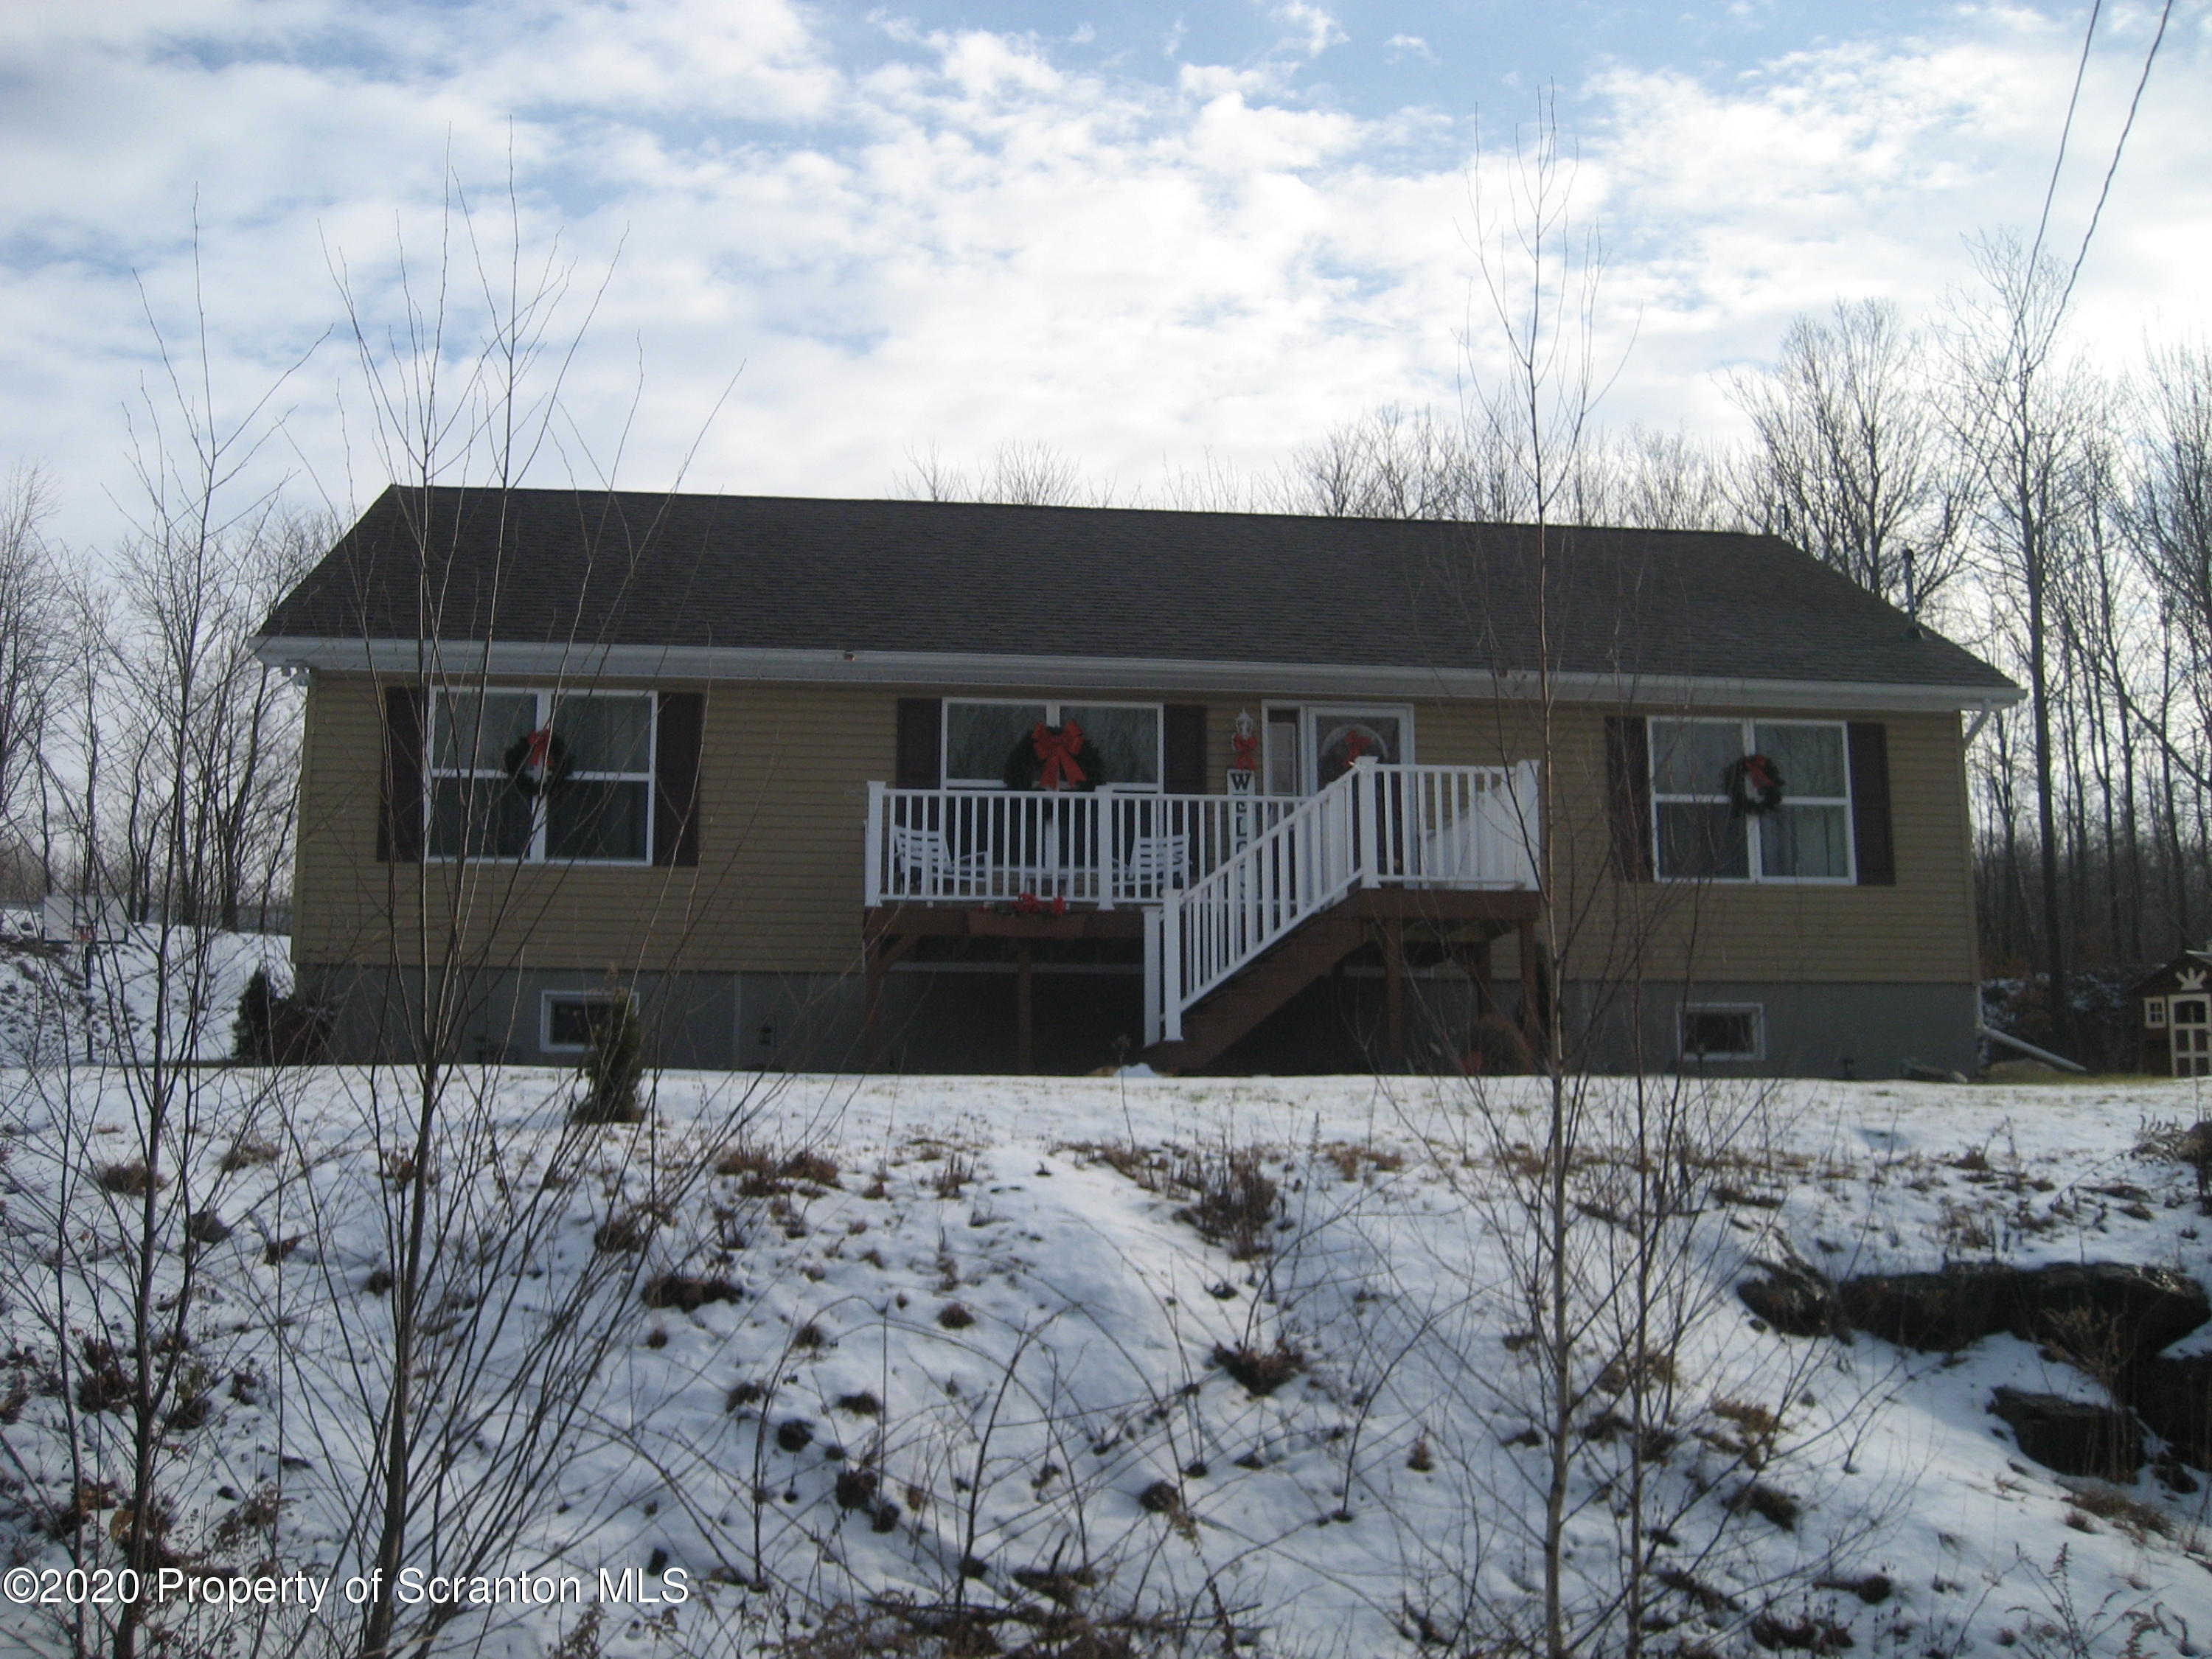 351 Cameron St, Carbondale, Pennsylvania 18407, 3 Bedrooms Bedrooms, 6 Rooms Rooms,3 BathroomsBathrooms,Single Family,For Sale,Cameron,20-5219